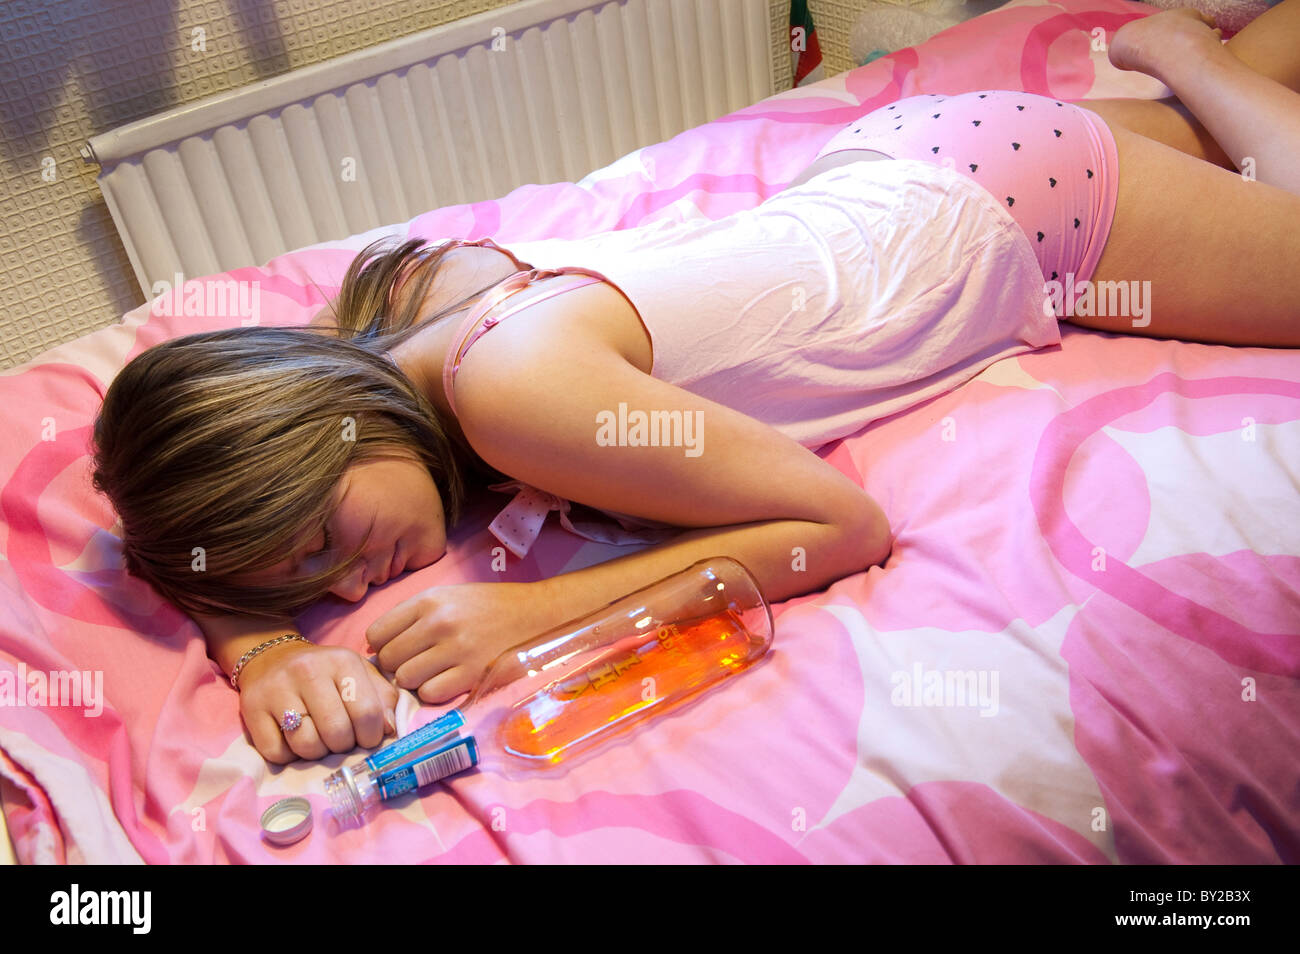 sexy russia young young teenies sleeping pics